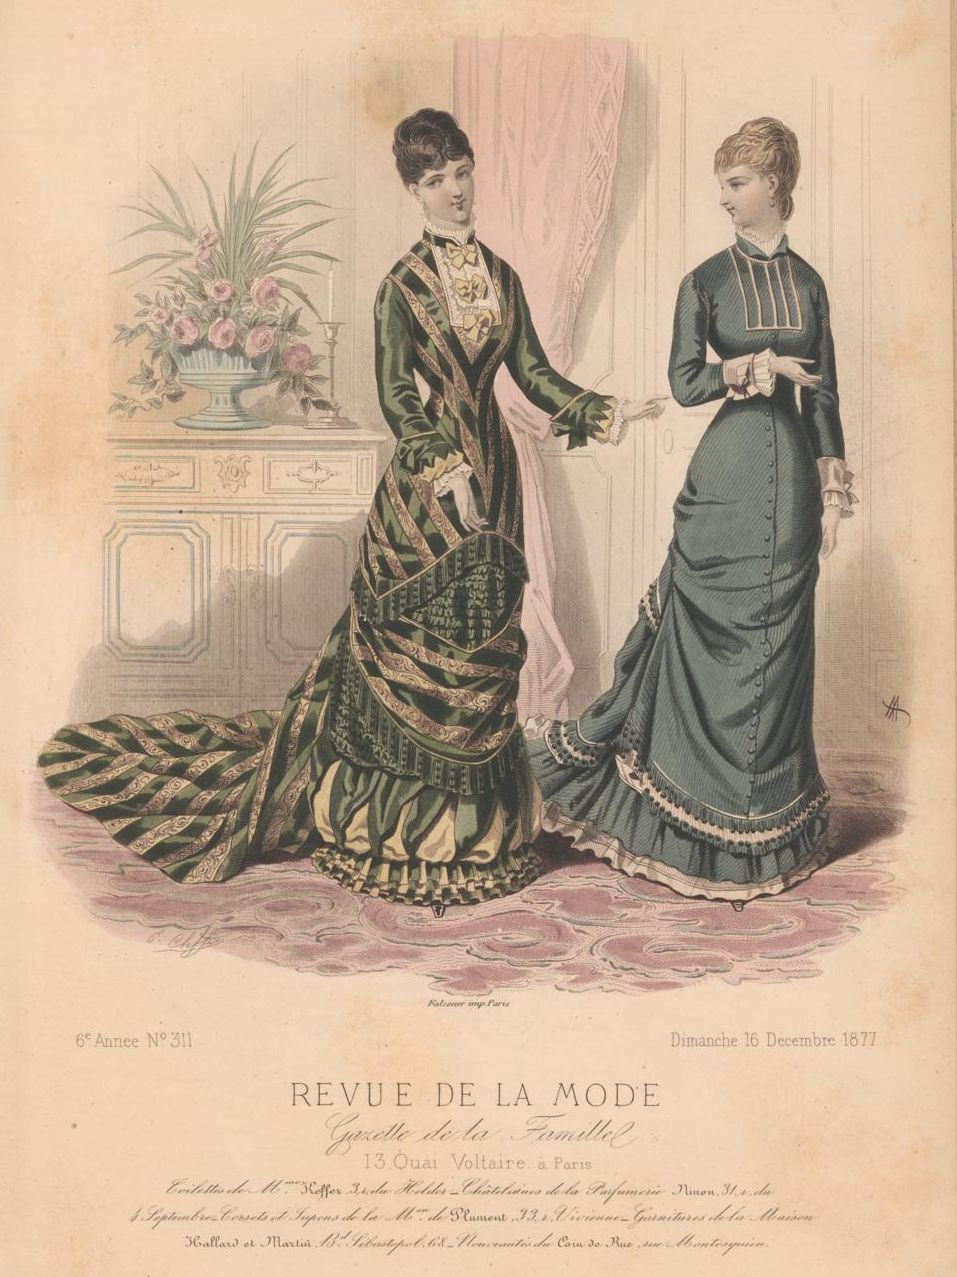 revue de la mode 1877 1877s fashion plates pinterest fashion plates 1870s fashion and. Black Bedroom Furniture Sets. Home Design Ideas